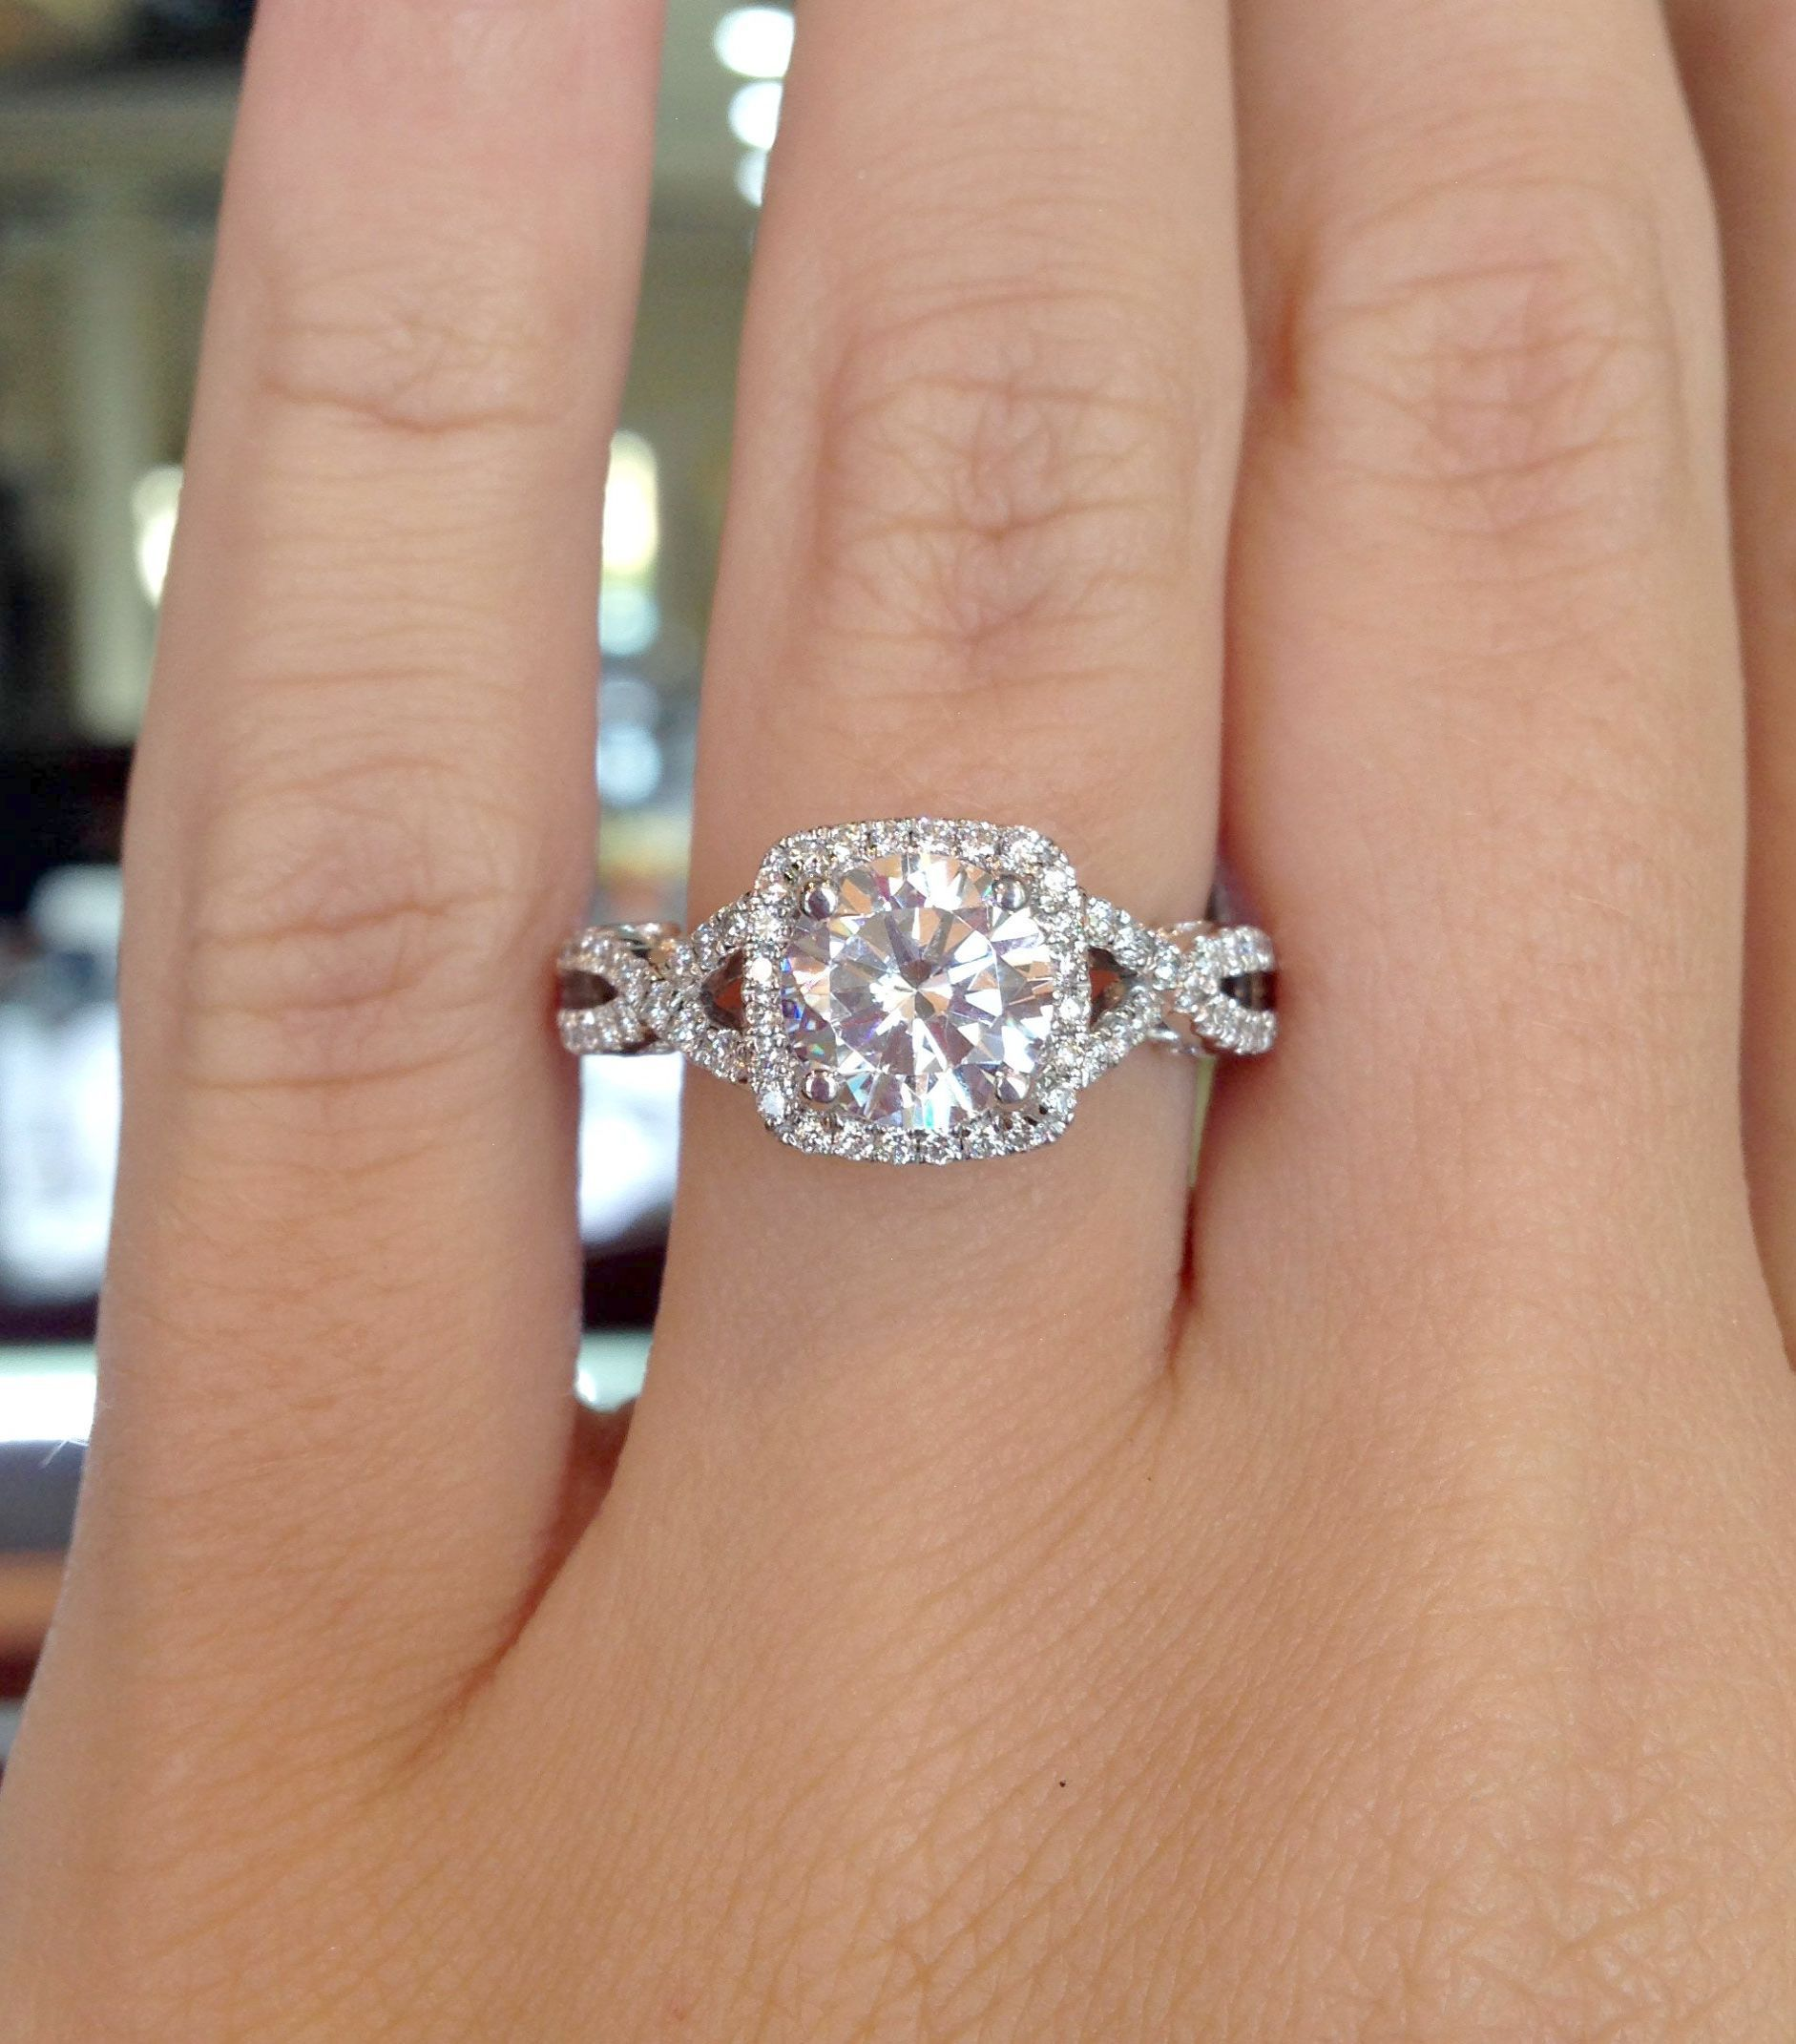 Why does an engagement ring dream